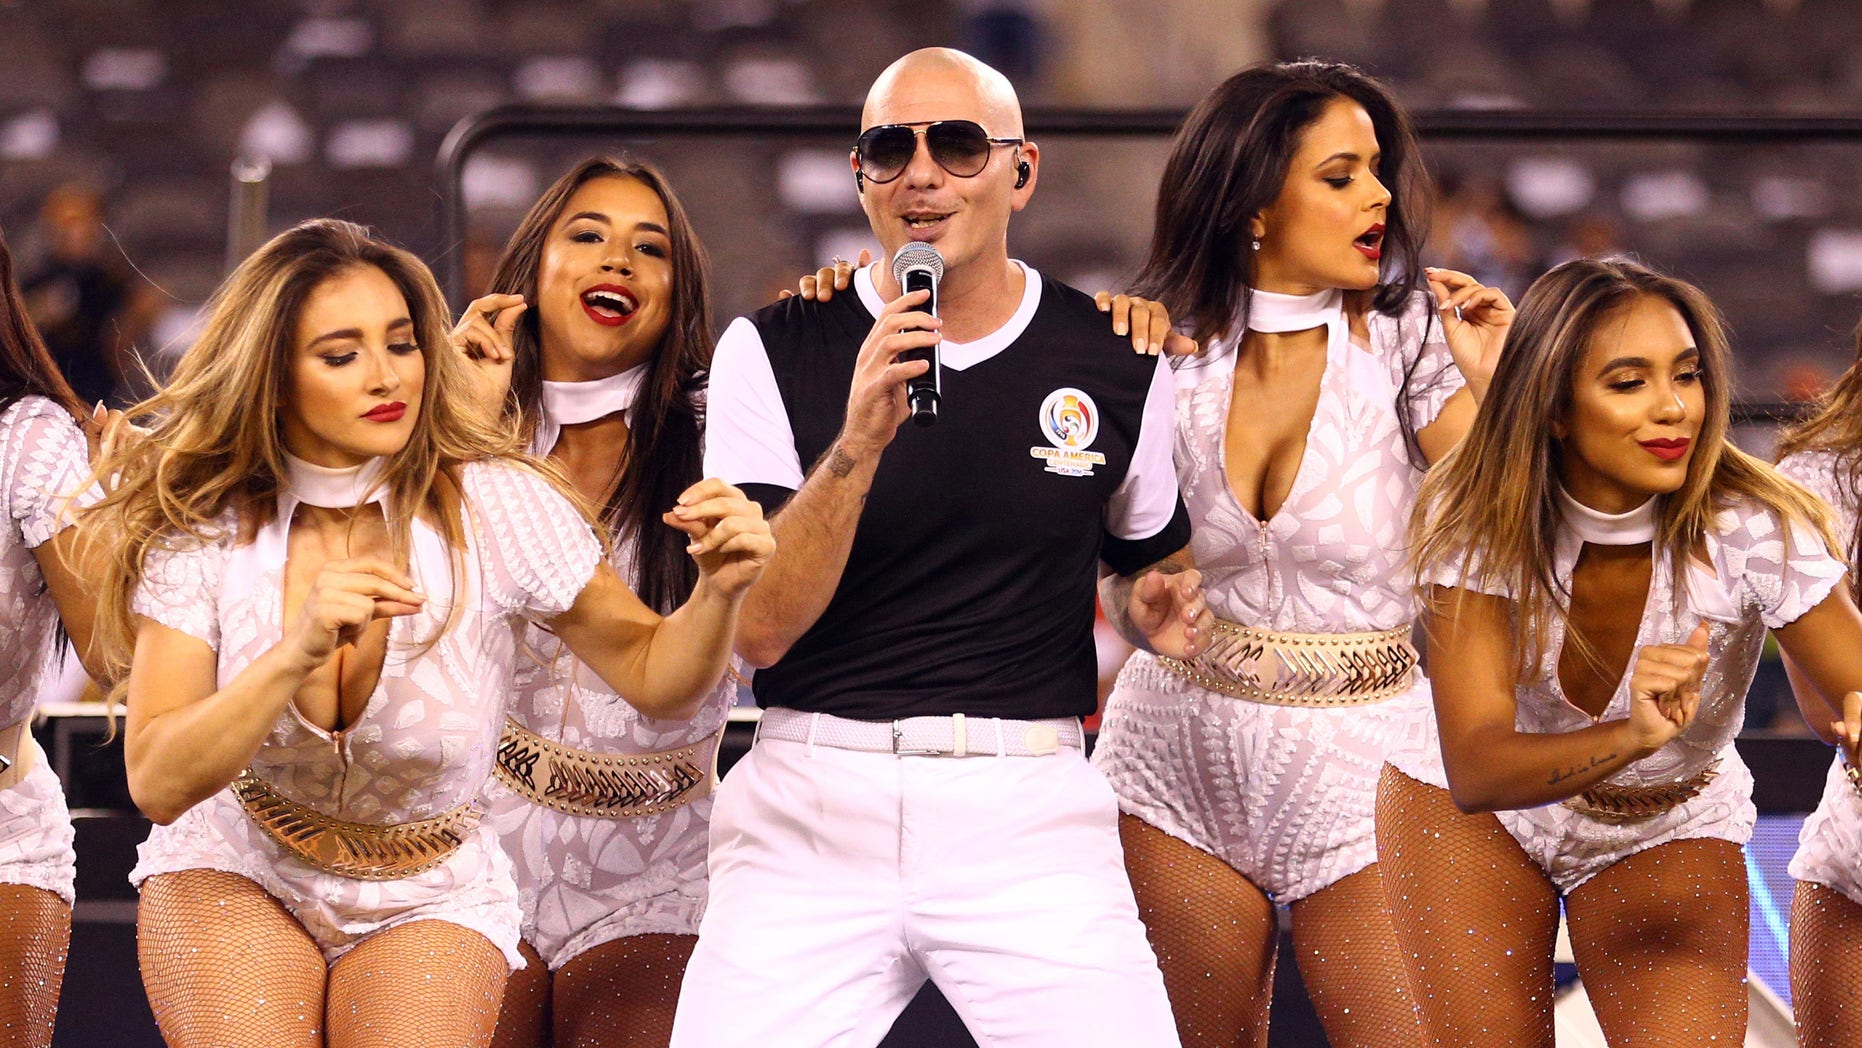 Jun 26, 2016; East Rutherford, NJ, USA; Recording artist Pitbull performs after the championship match of the 2016 Copa America Centenario soccer tournament at MetLife Stadium. Chile defeated Argentina 0-0 (4-2). Mandatory Credit: Brad Penner-USA TODAY Sports - RTX2IDRC